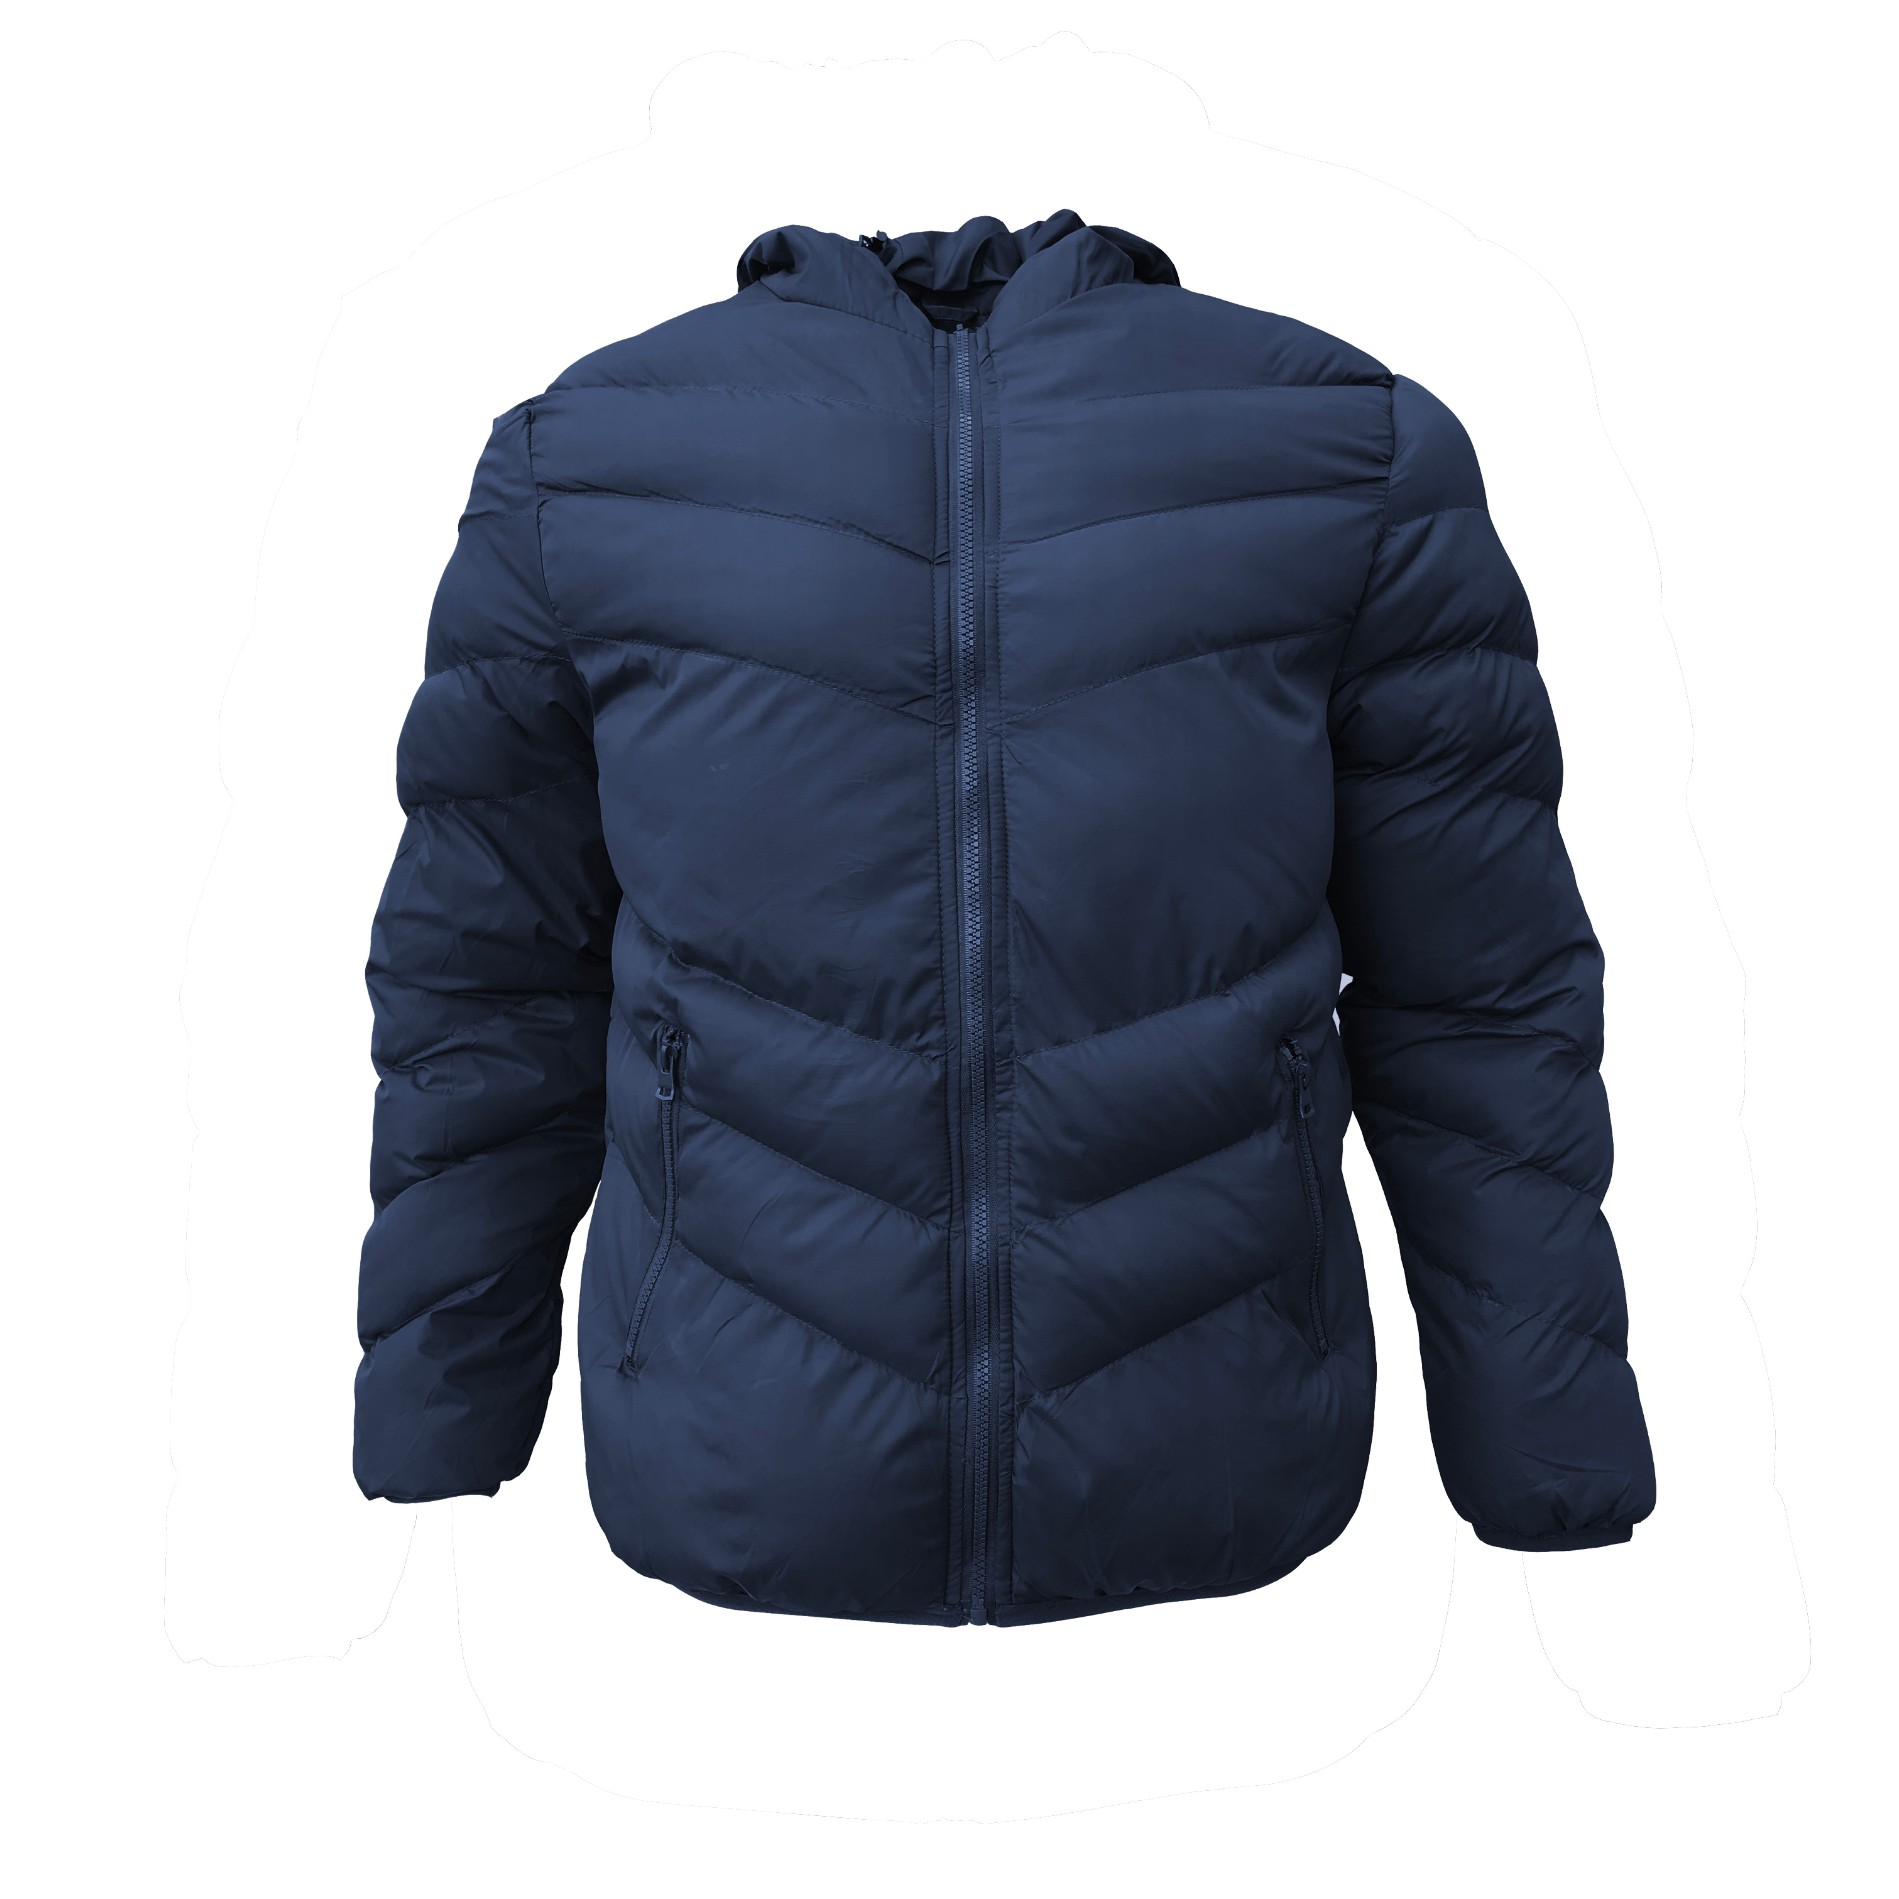 High Quality Padded Jackets Winter Jackets For Men Manufacturers, High Quality Padded Jackets Winter Jackets For Men Factory, Supply High Quality Padded Jackets Winter Jackets For Men